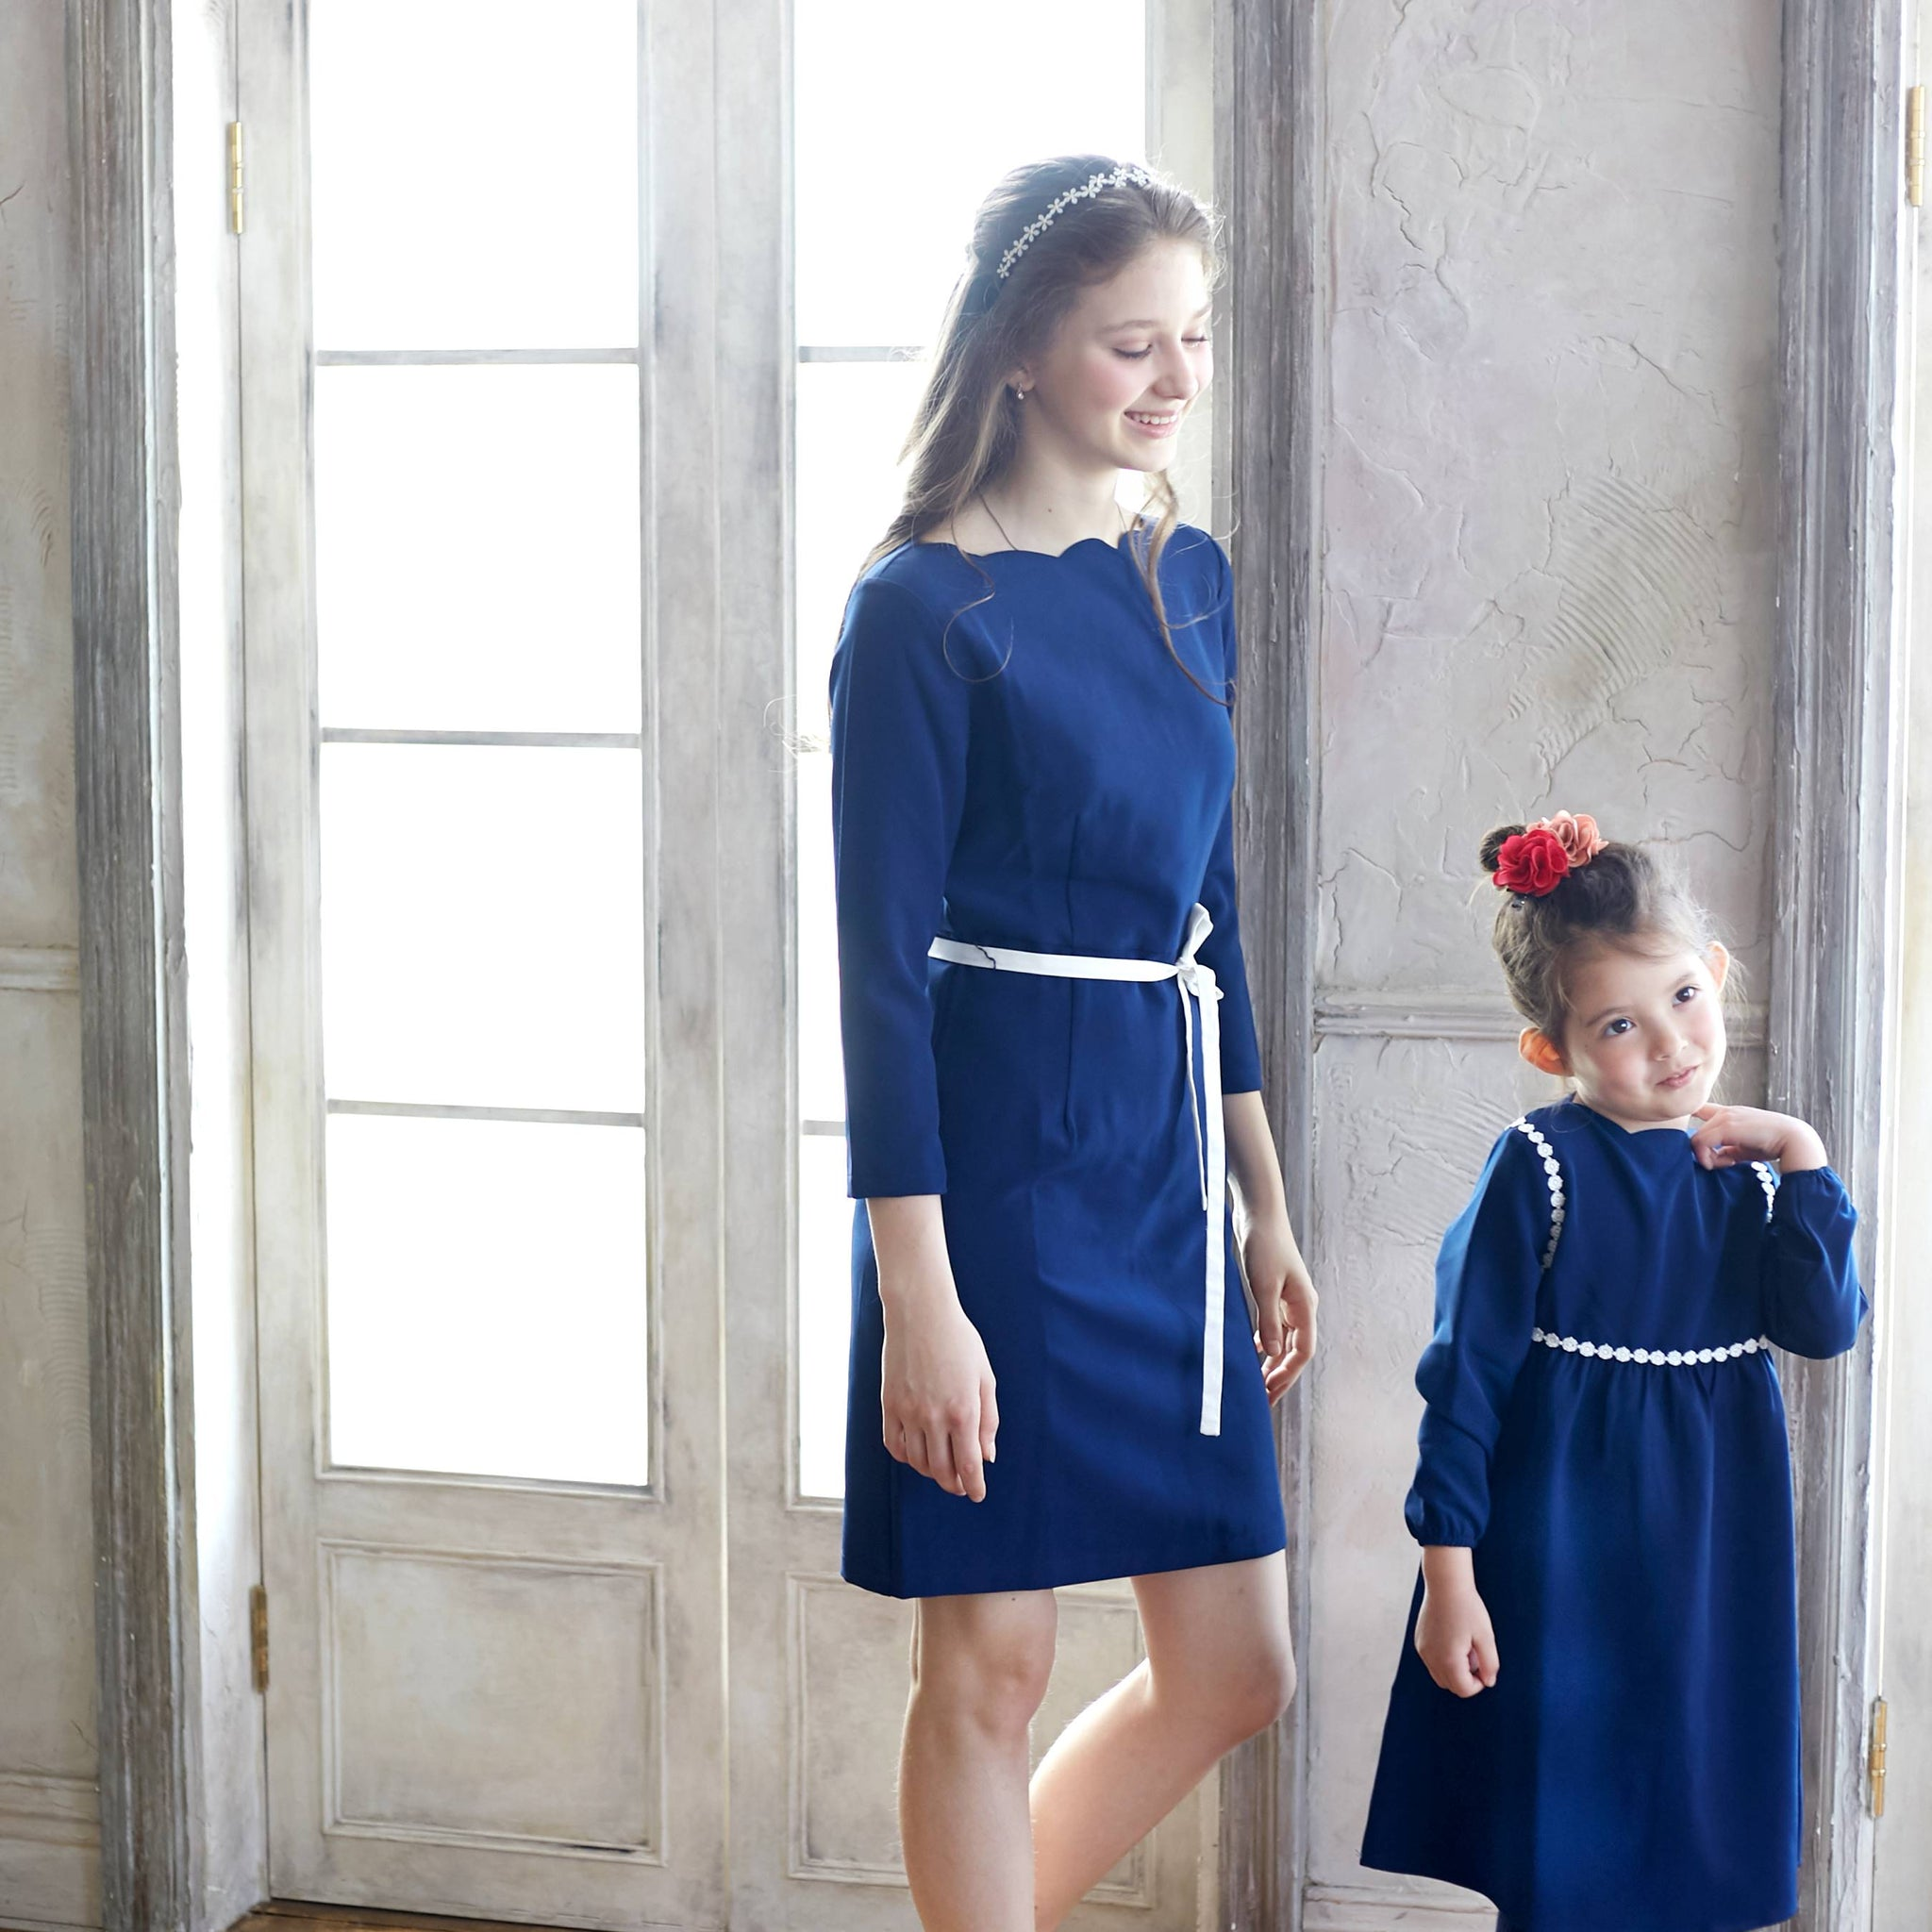 (Mommy & Me) Tip the Scallops Navy Blue Dress - Bunny n Bloom Mommy & Me Dress